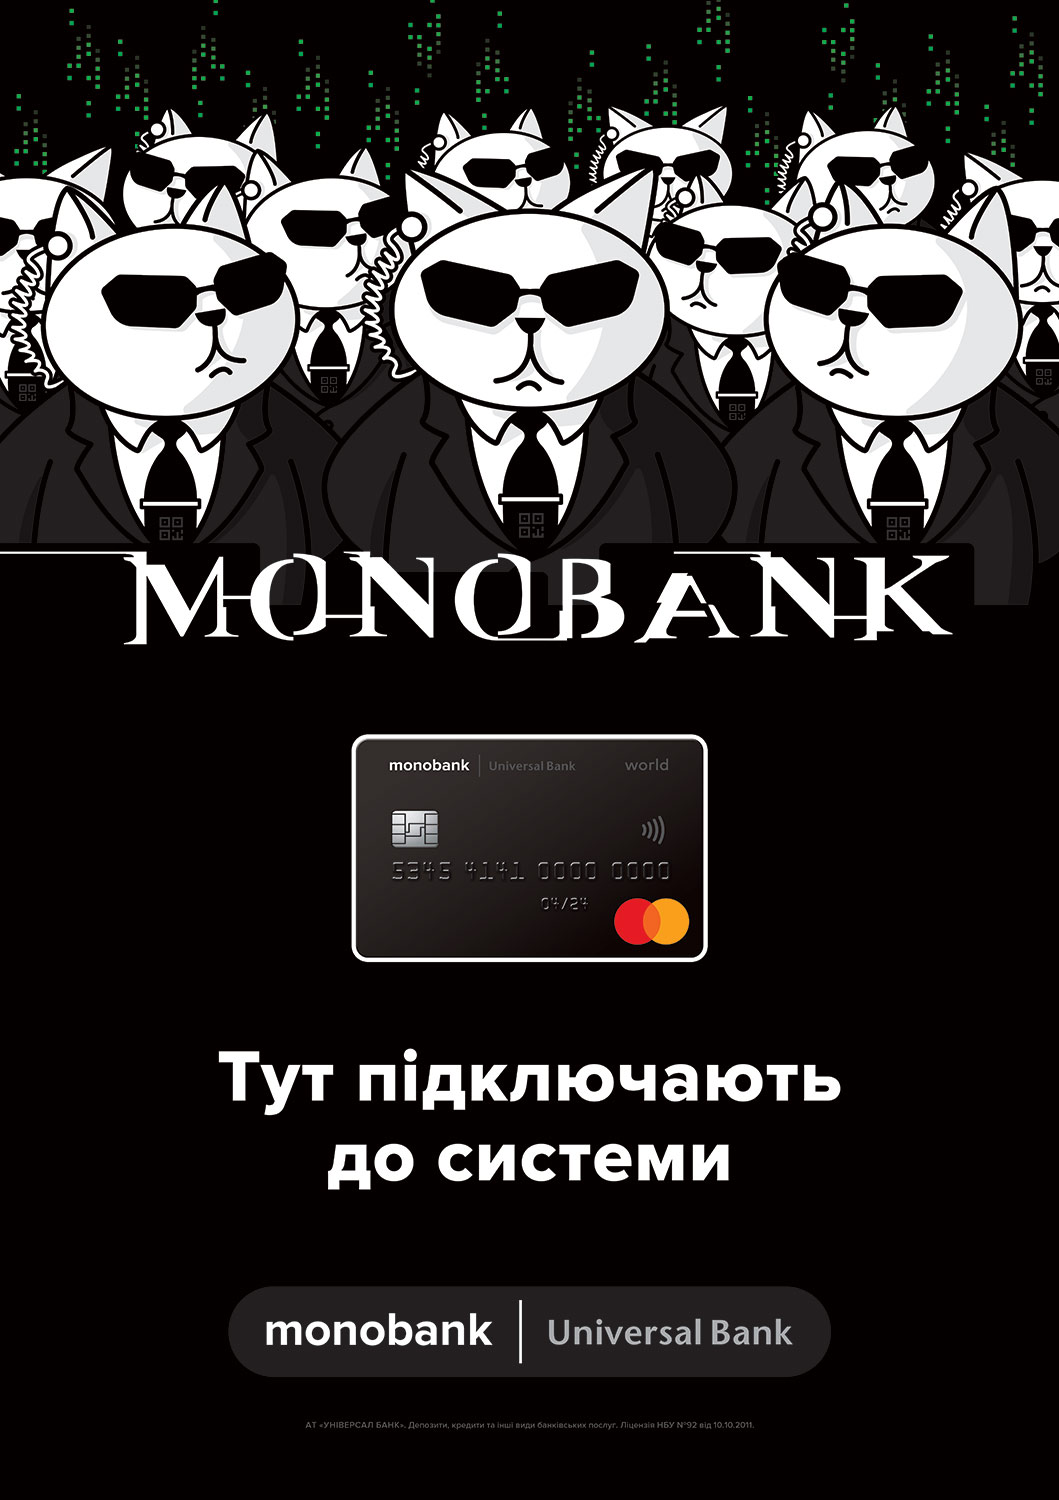 monobank They connect to the system here. QR cat Agent Smith from The Matrix.